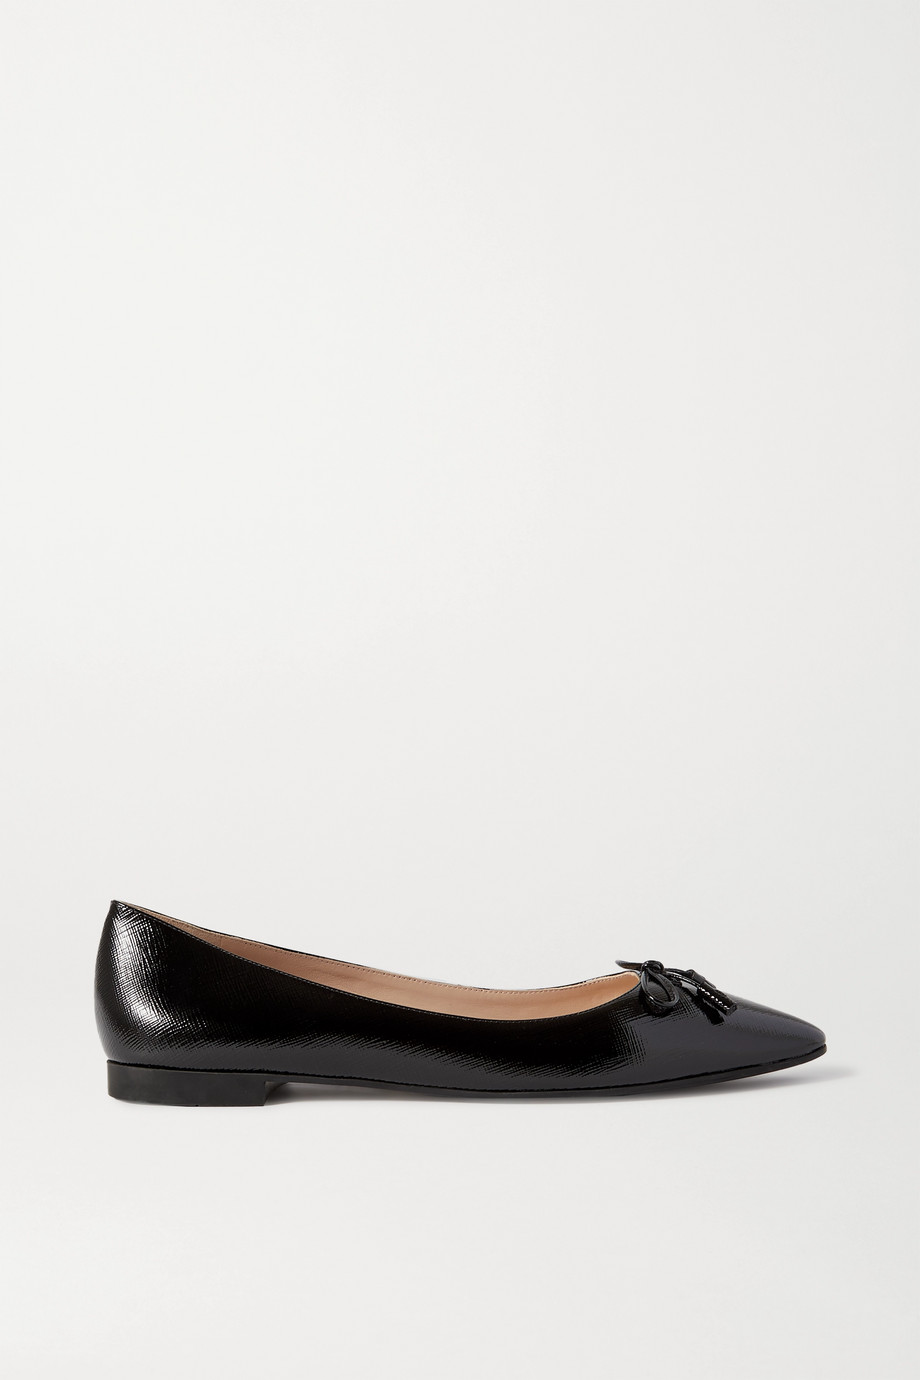 Prada 15 glossed textured-leather ballet flats